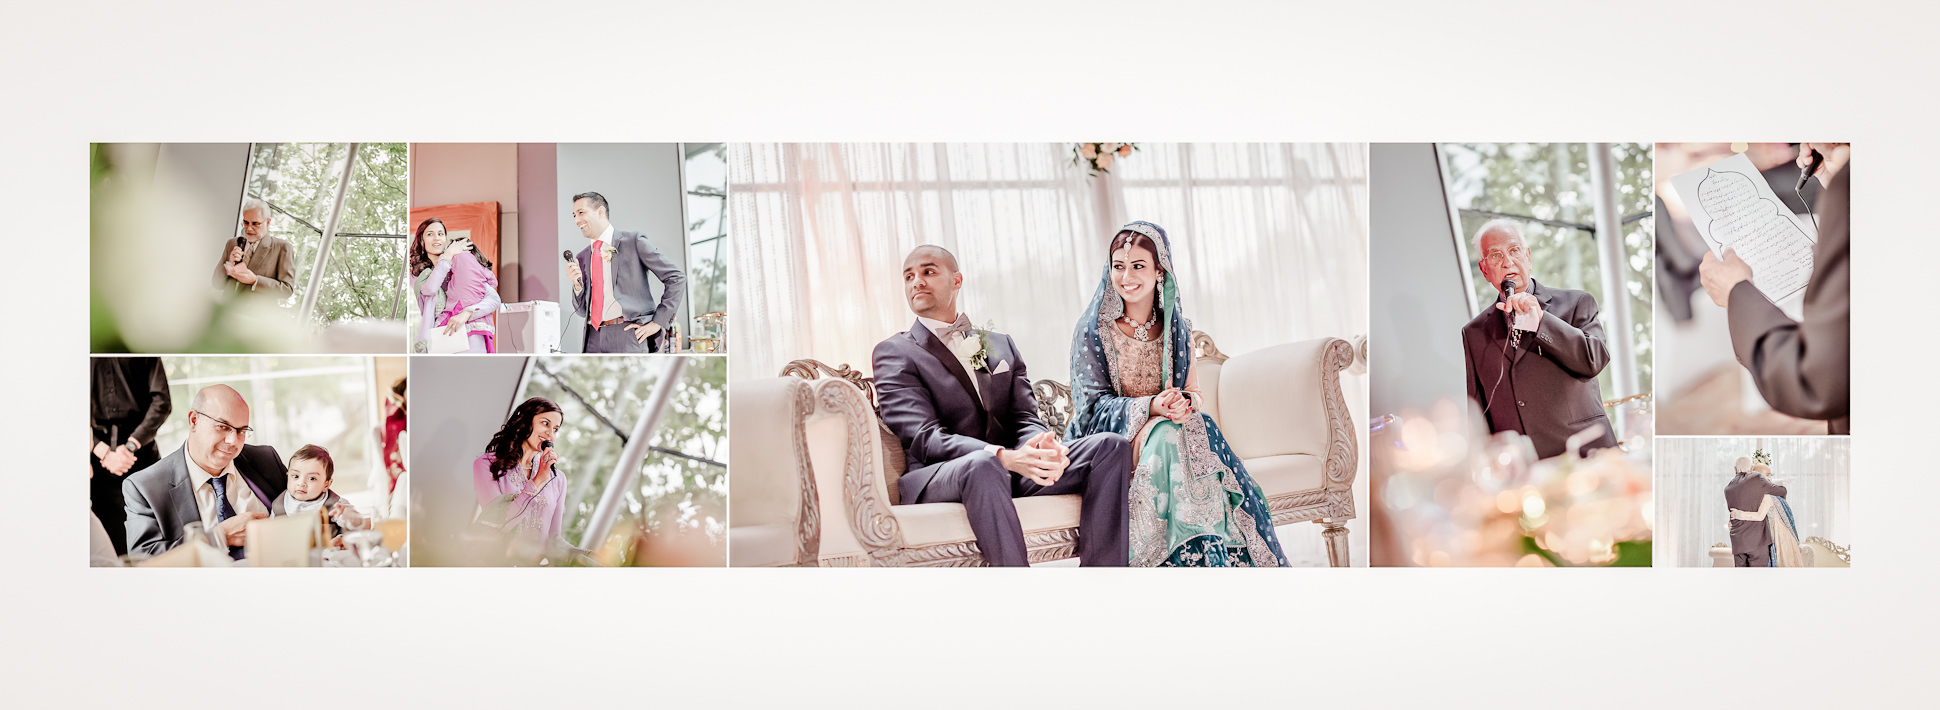 indian-wedding-photography-271